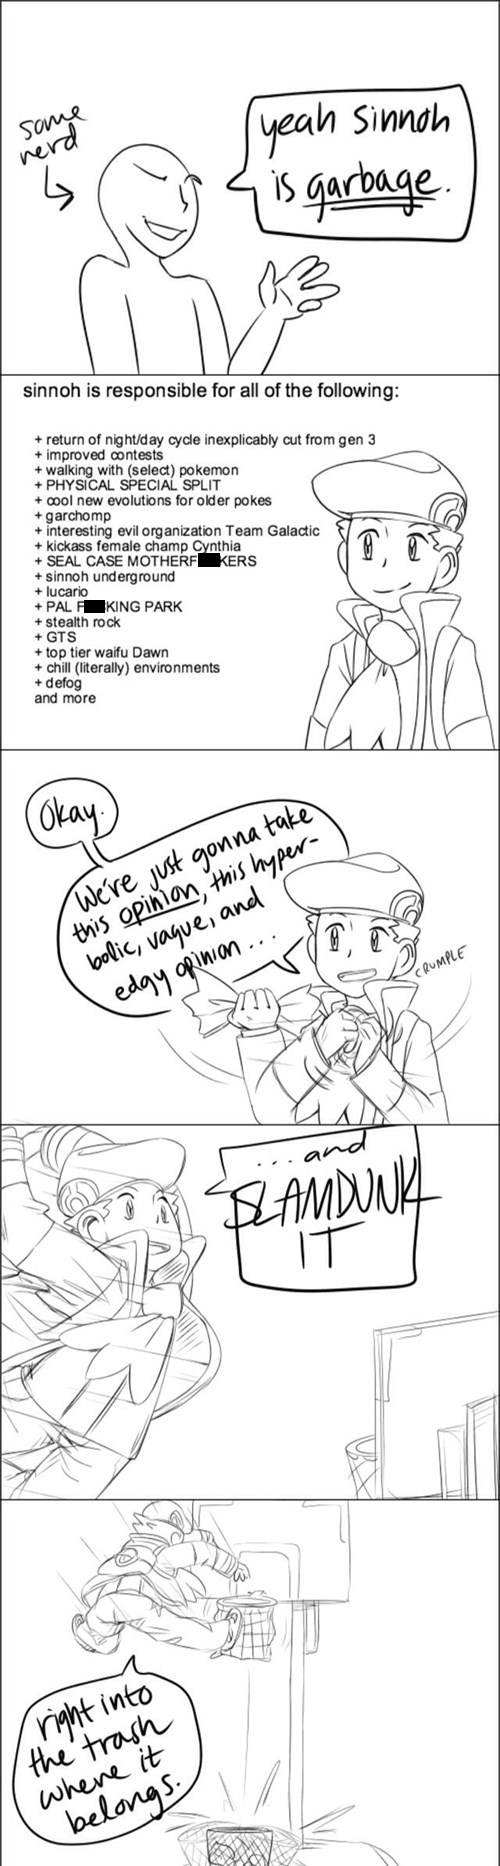 Fan Art sinnoh web comics - 8417811968